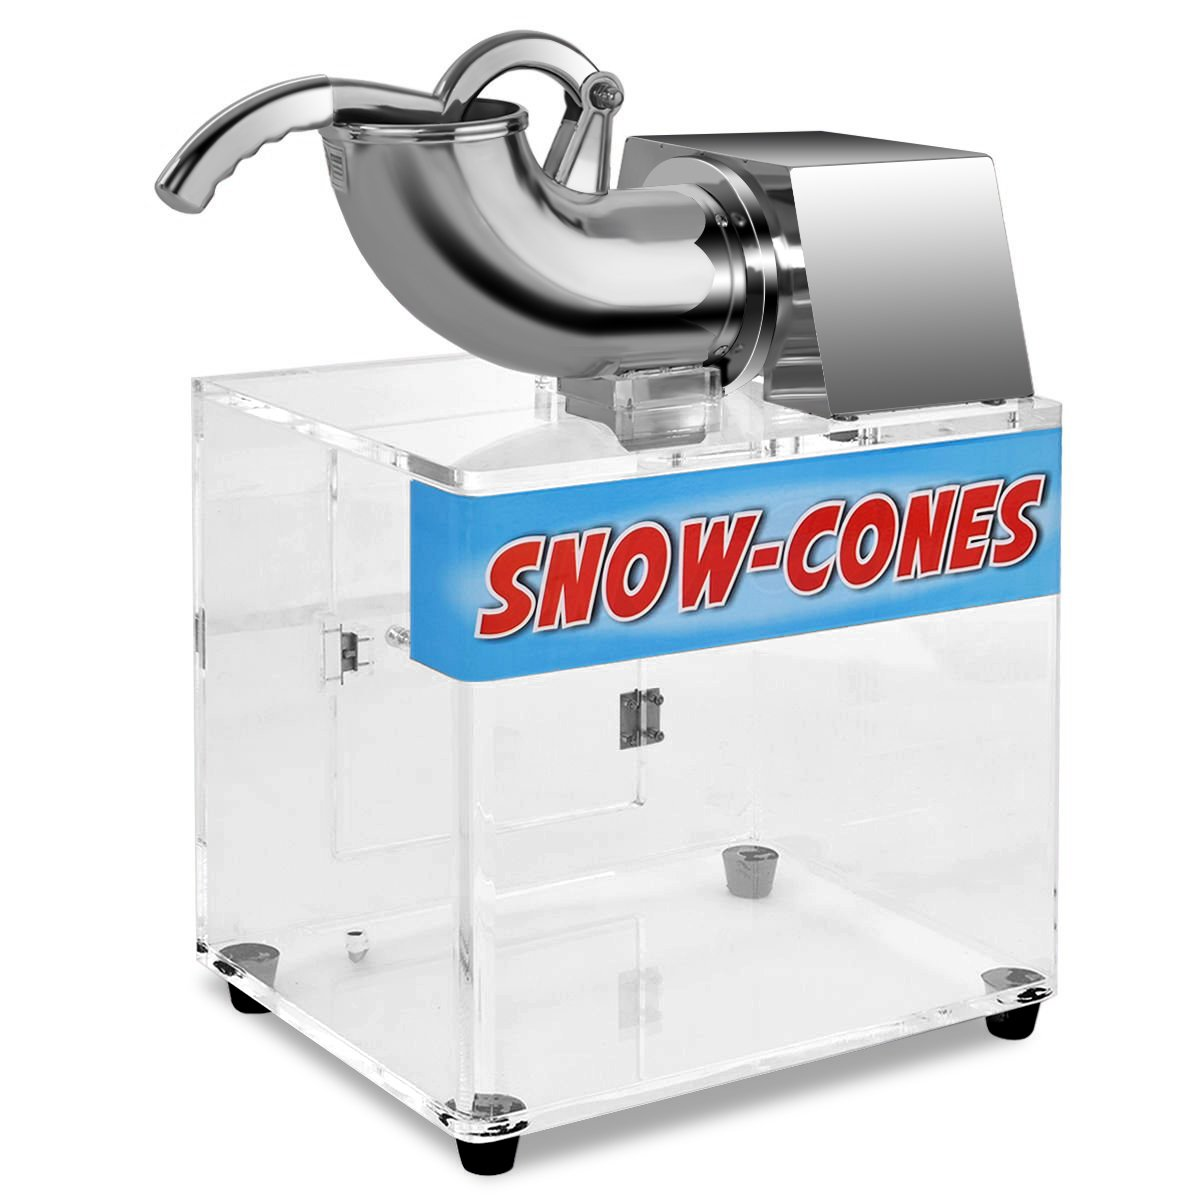 Costzon Ice Shaver, Stainless Steel Electric Crusher, Snow Cone Machine w/Dual Blades, Safety On/Off Switch for Family, School, Church, Kids Camp, Restaurants, Bars Or Commercial Use, 440lbs/H by Costzon